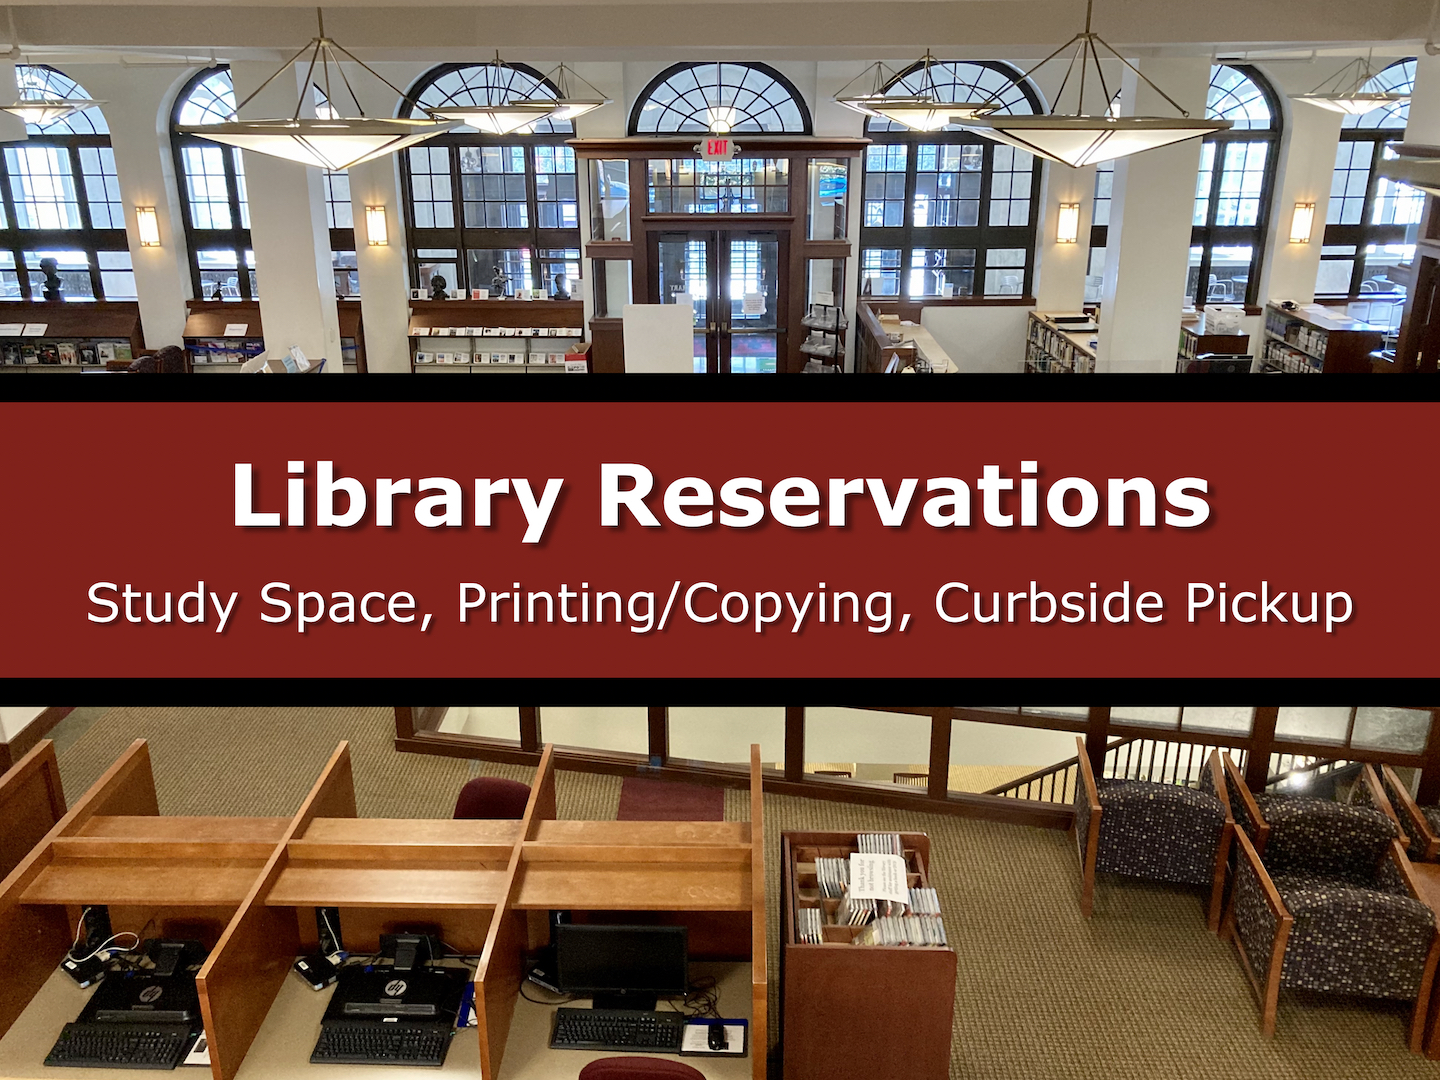 """Image Button of overhead of Lowell Library with text: """"Library Reservations: Study Space, Printing/Copying, Curbside Pickup"""""""